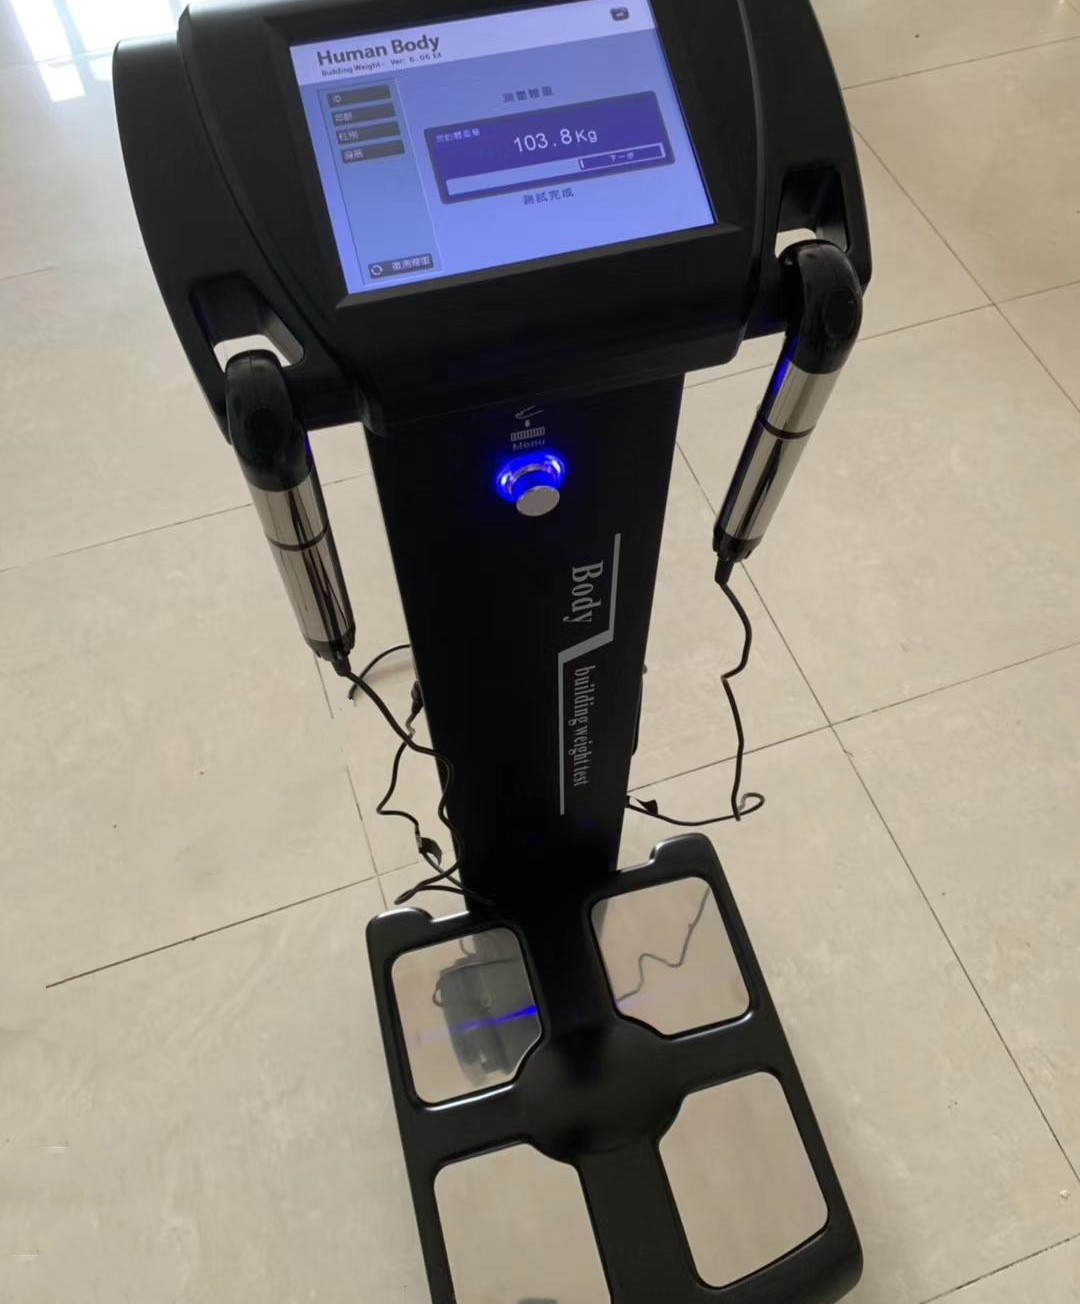 Sports Club Health Human Body Elements Analysis Weighing Scales Beauty Care Weight Loss Body Composition Analyzer